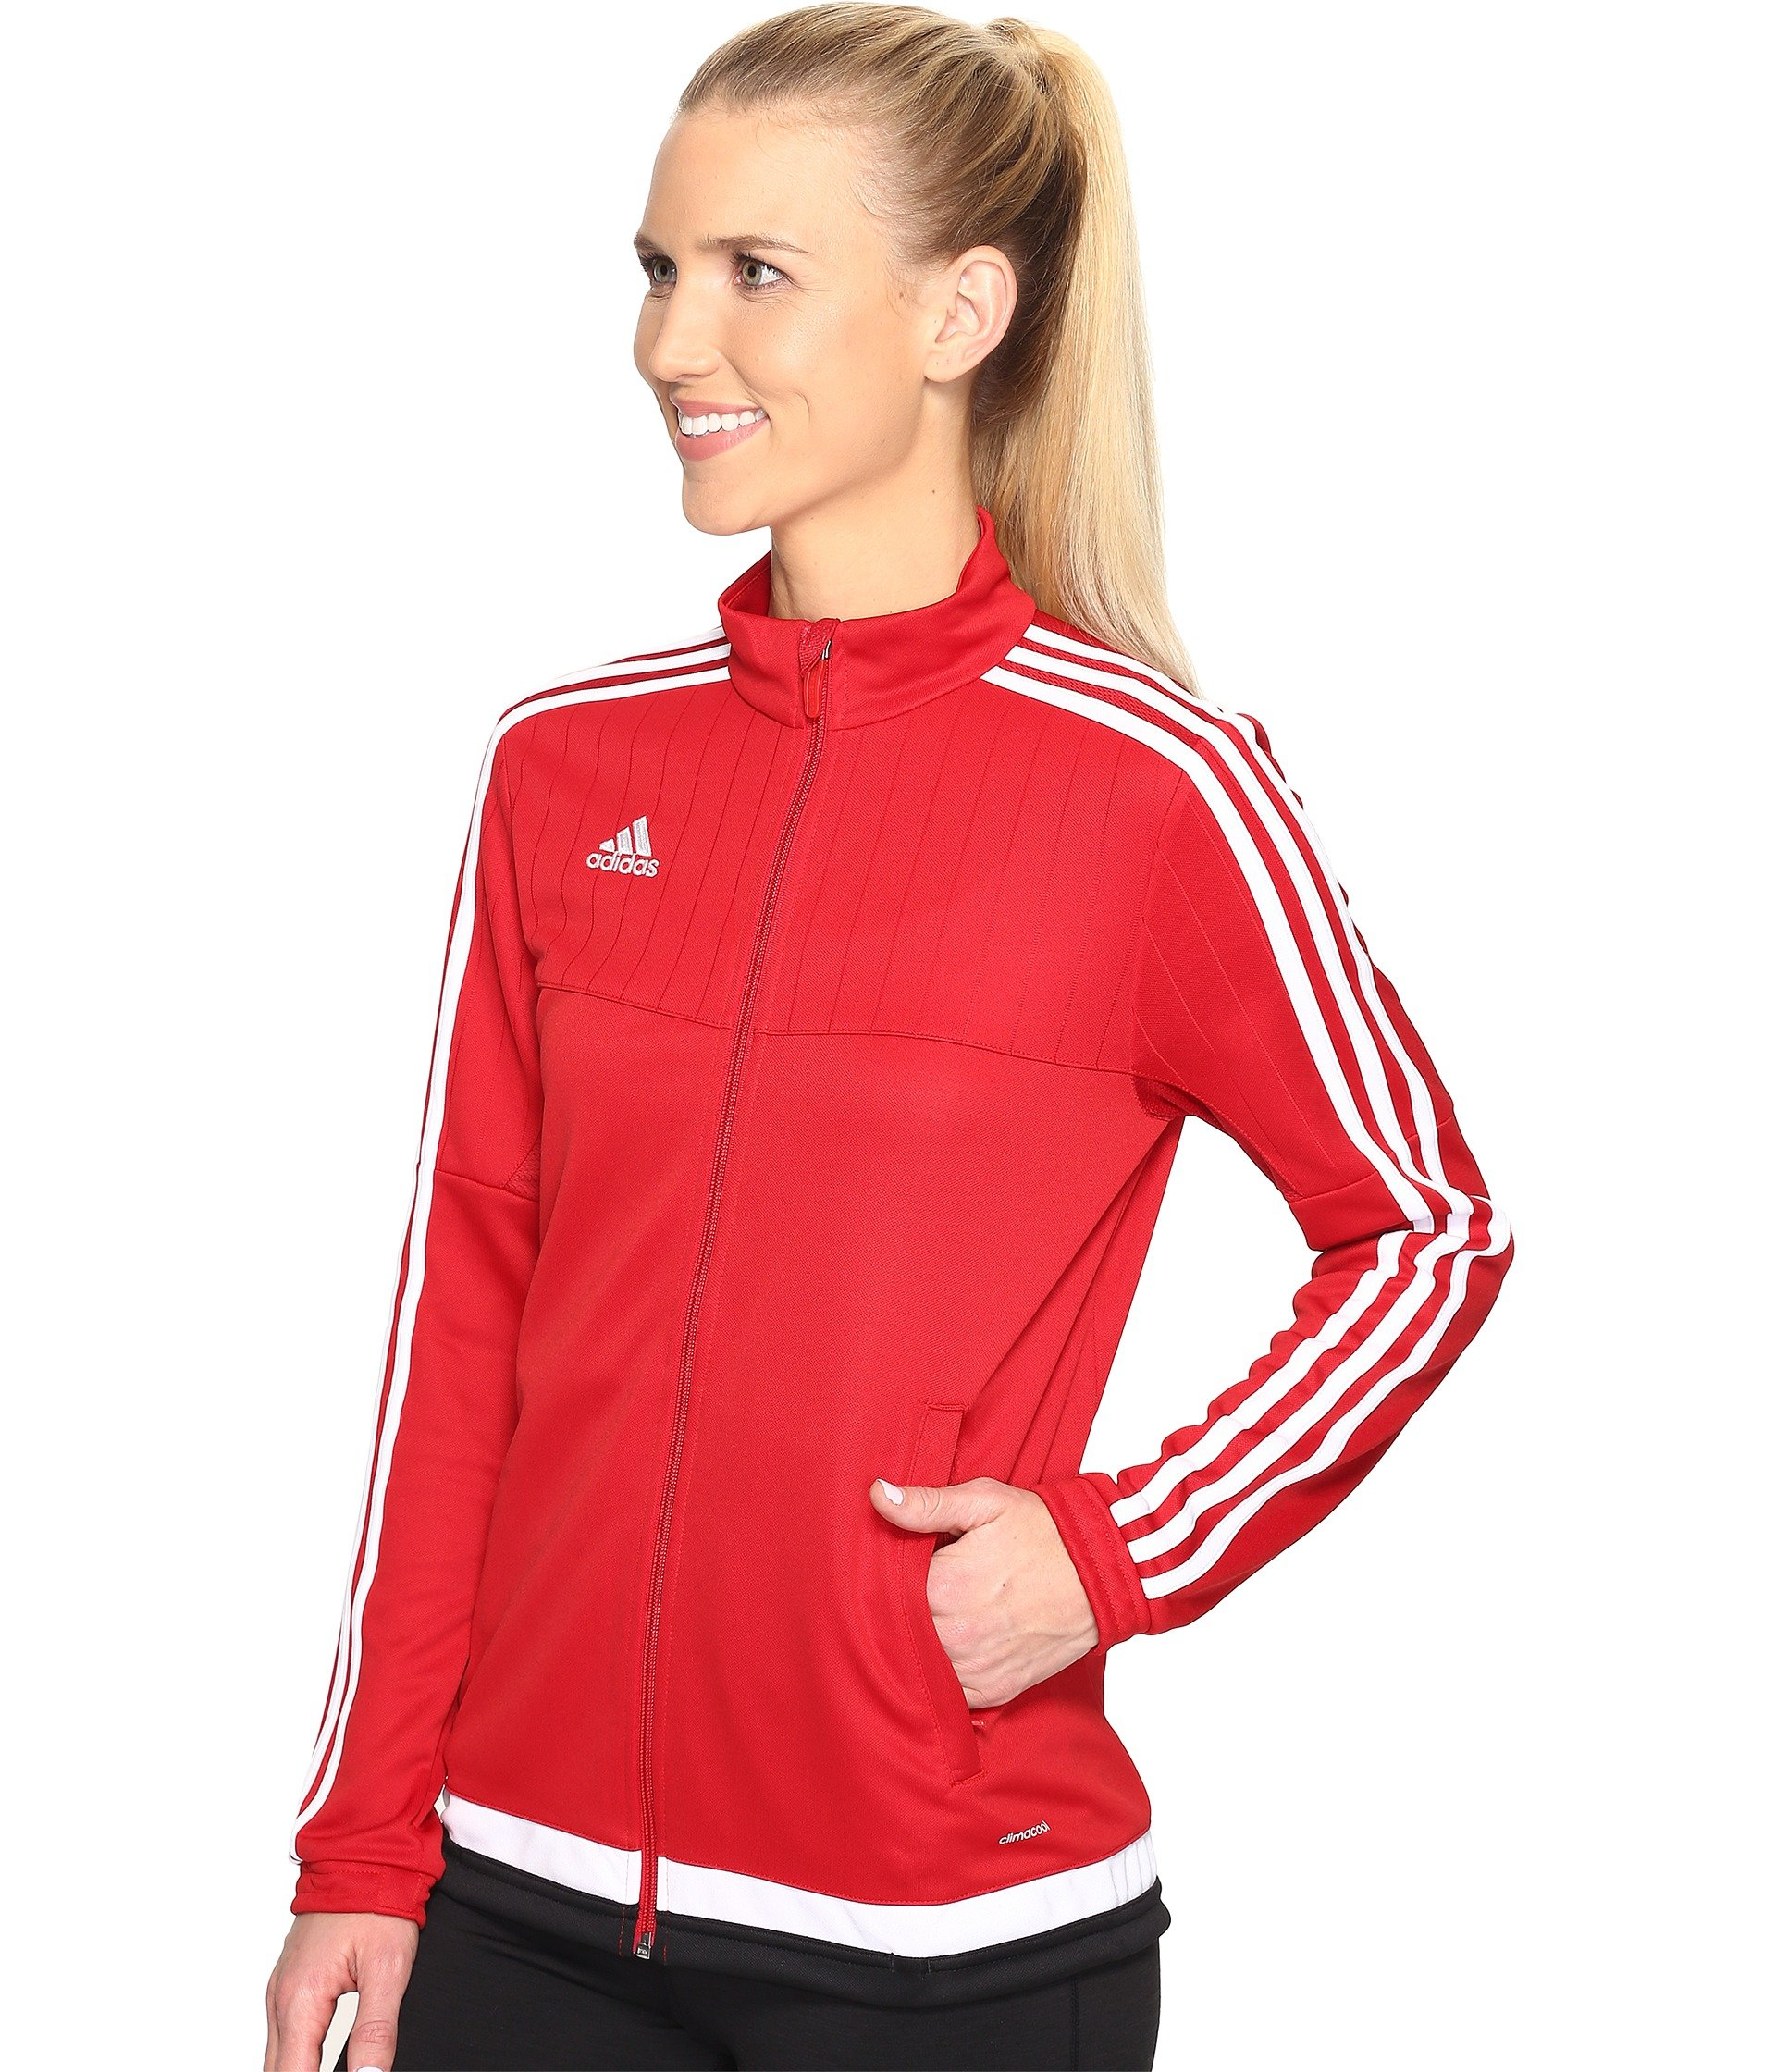 adidas originals tiro 15 training jacket in power red. Black Bedroom Furniture Sets. Home Design Ideas